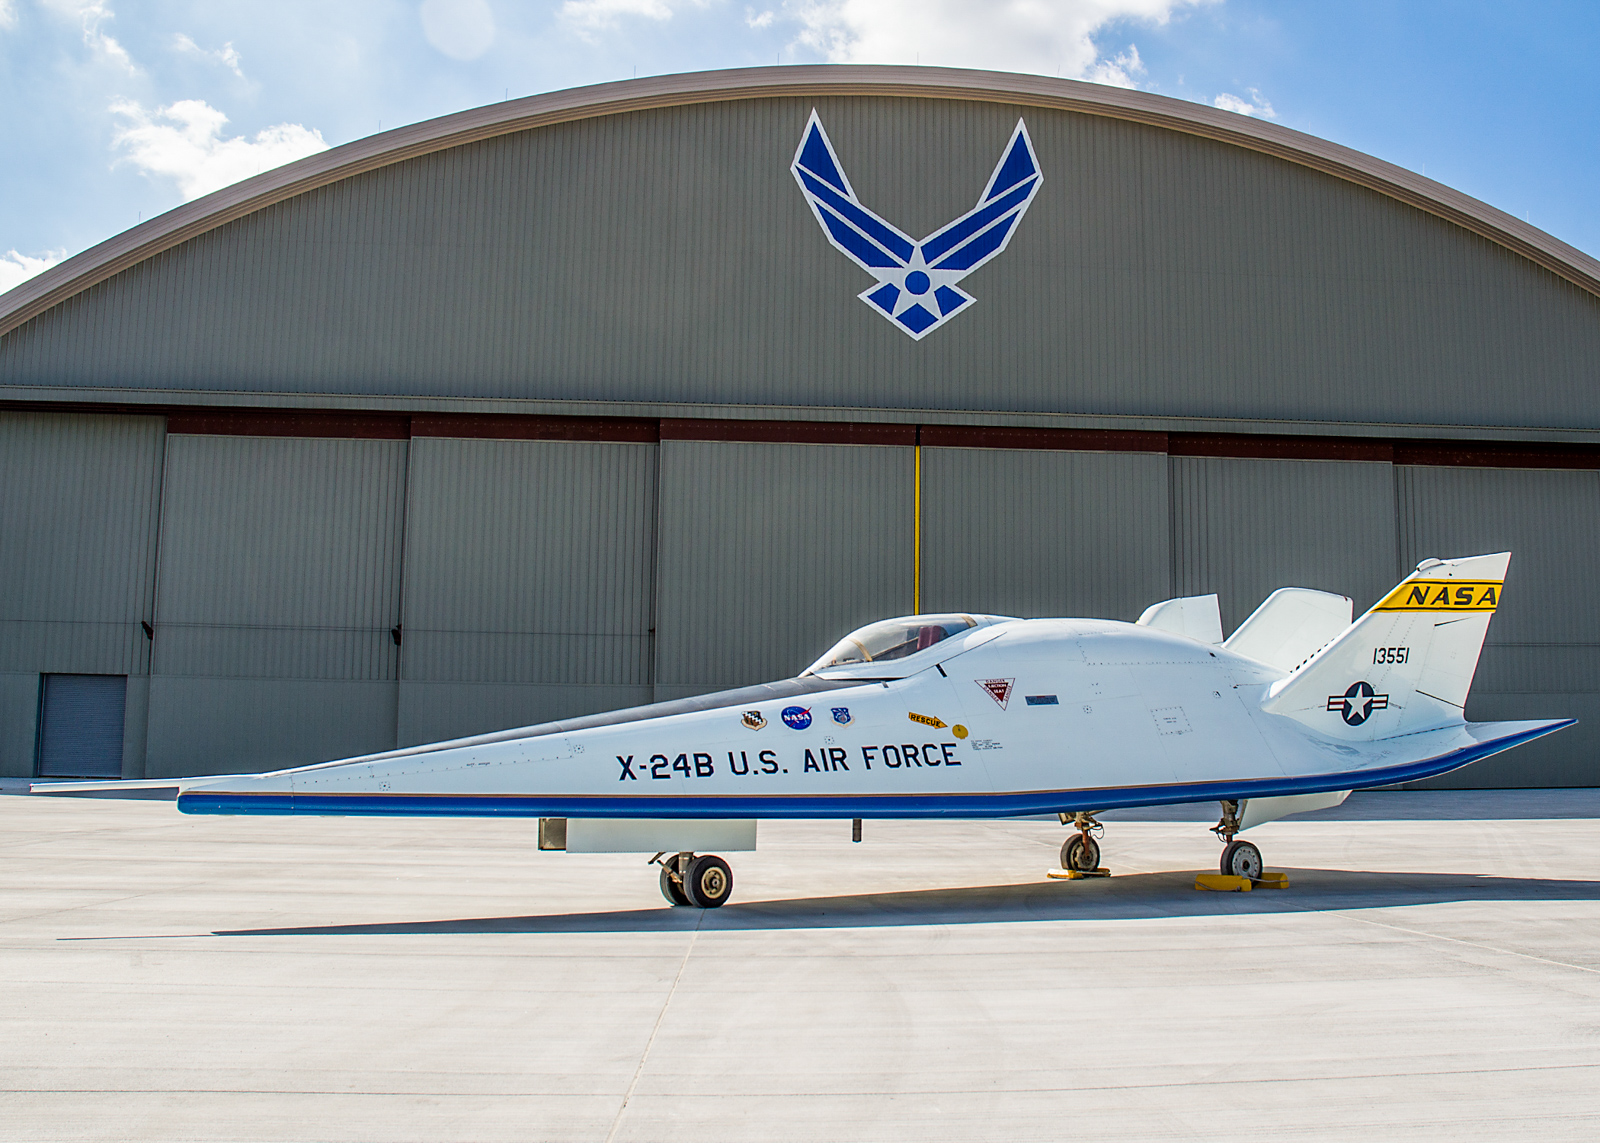 The Martin X-24B in front of  the new fourth building at the National Museum of the U.S. Air Force on Oct. 14, 2015. The X-24B started life as the radically different X-24A as represented in the image above. (U.S. Air Force photo by Ken LaRock)